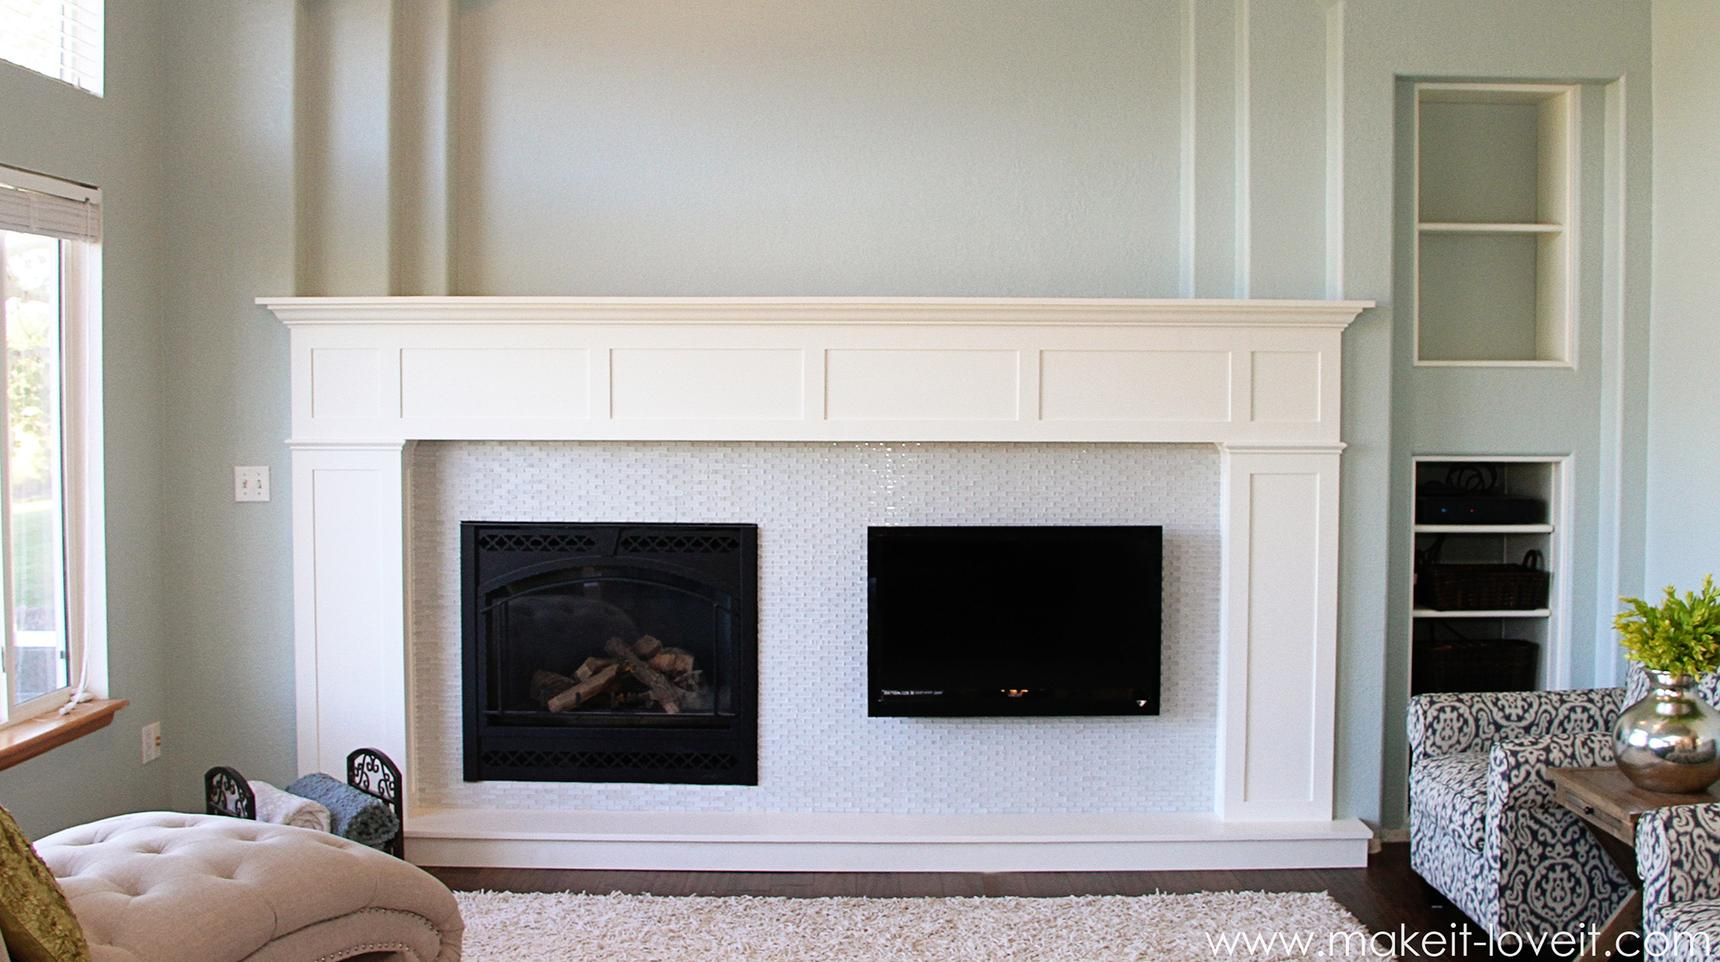 Fireplace Remodel Ideas Before And After Refinishing Remodels Refacing Tile Apps Directories